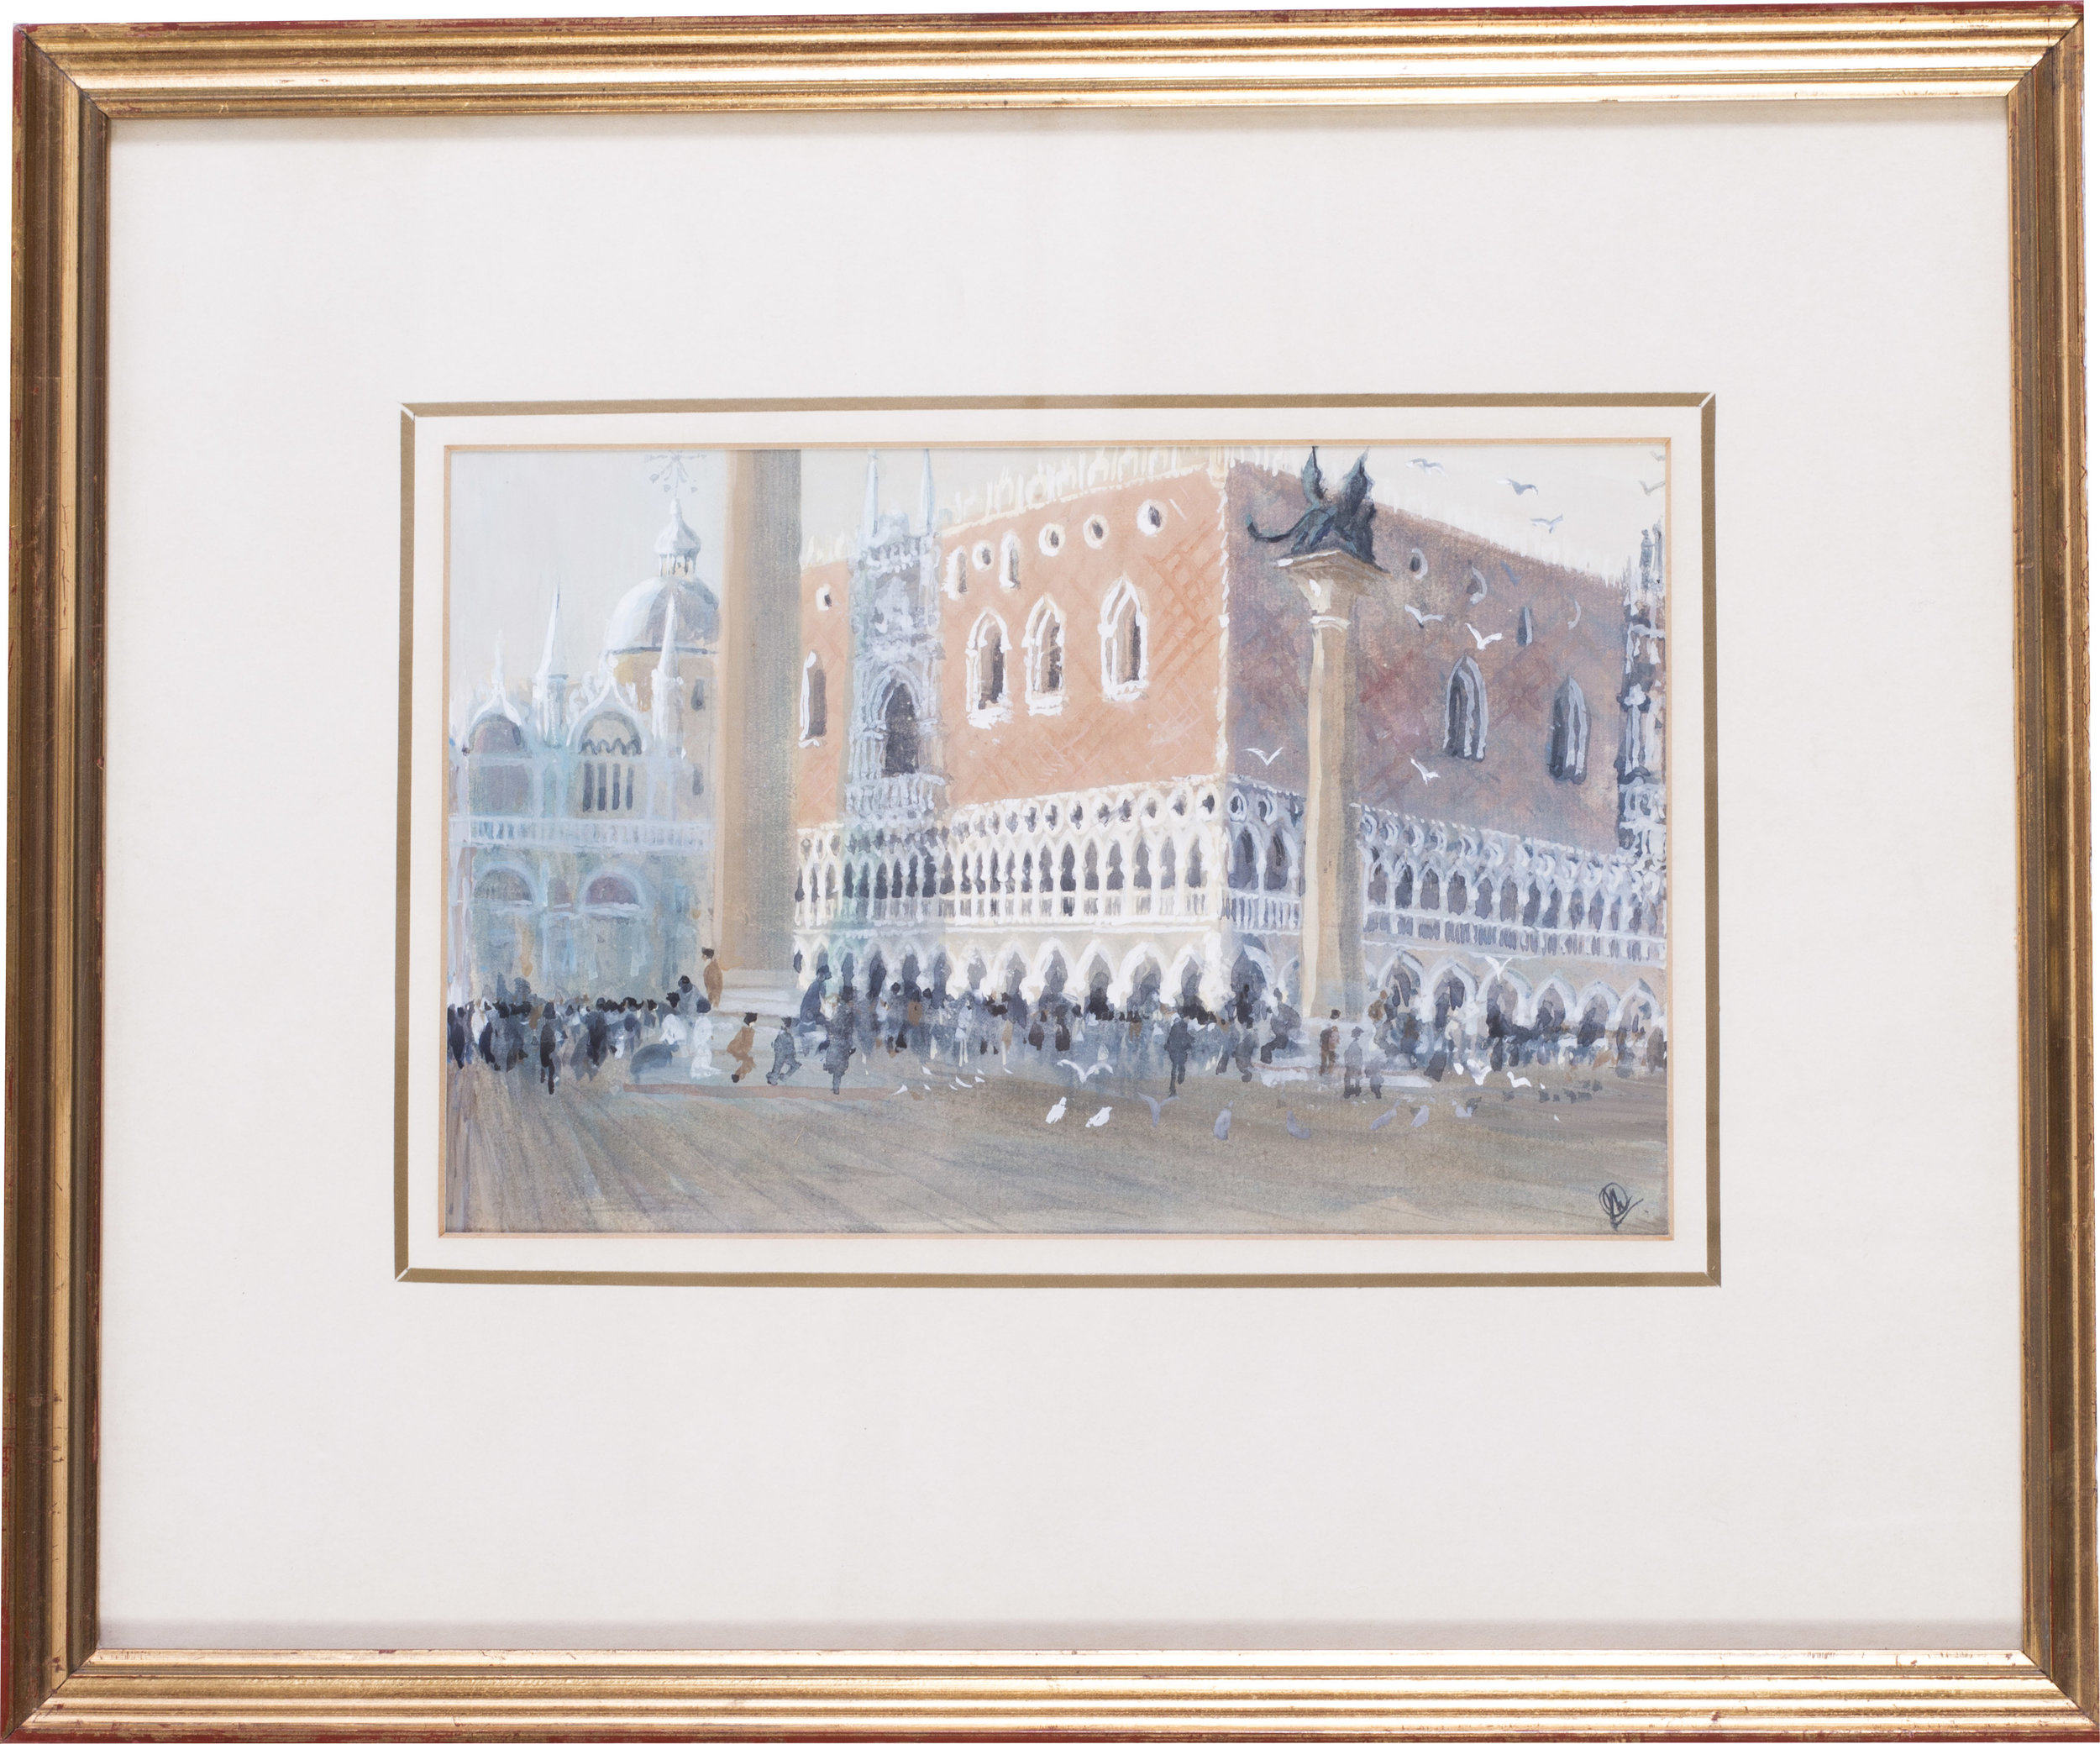 San Marco, Venice , circa 1986   Acrylic and watercolour on paper   Monogrammed (lower right)   6.1/4 x 9.7/8 in. (15.8 x 25 cm.)   Provenance: The Catto Gallery, London   Price: £450